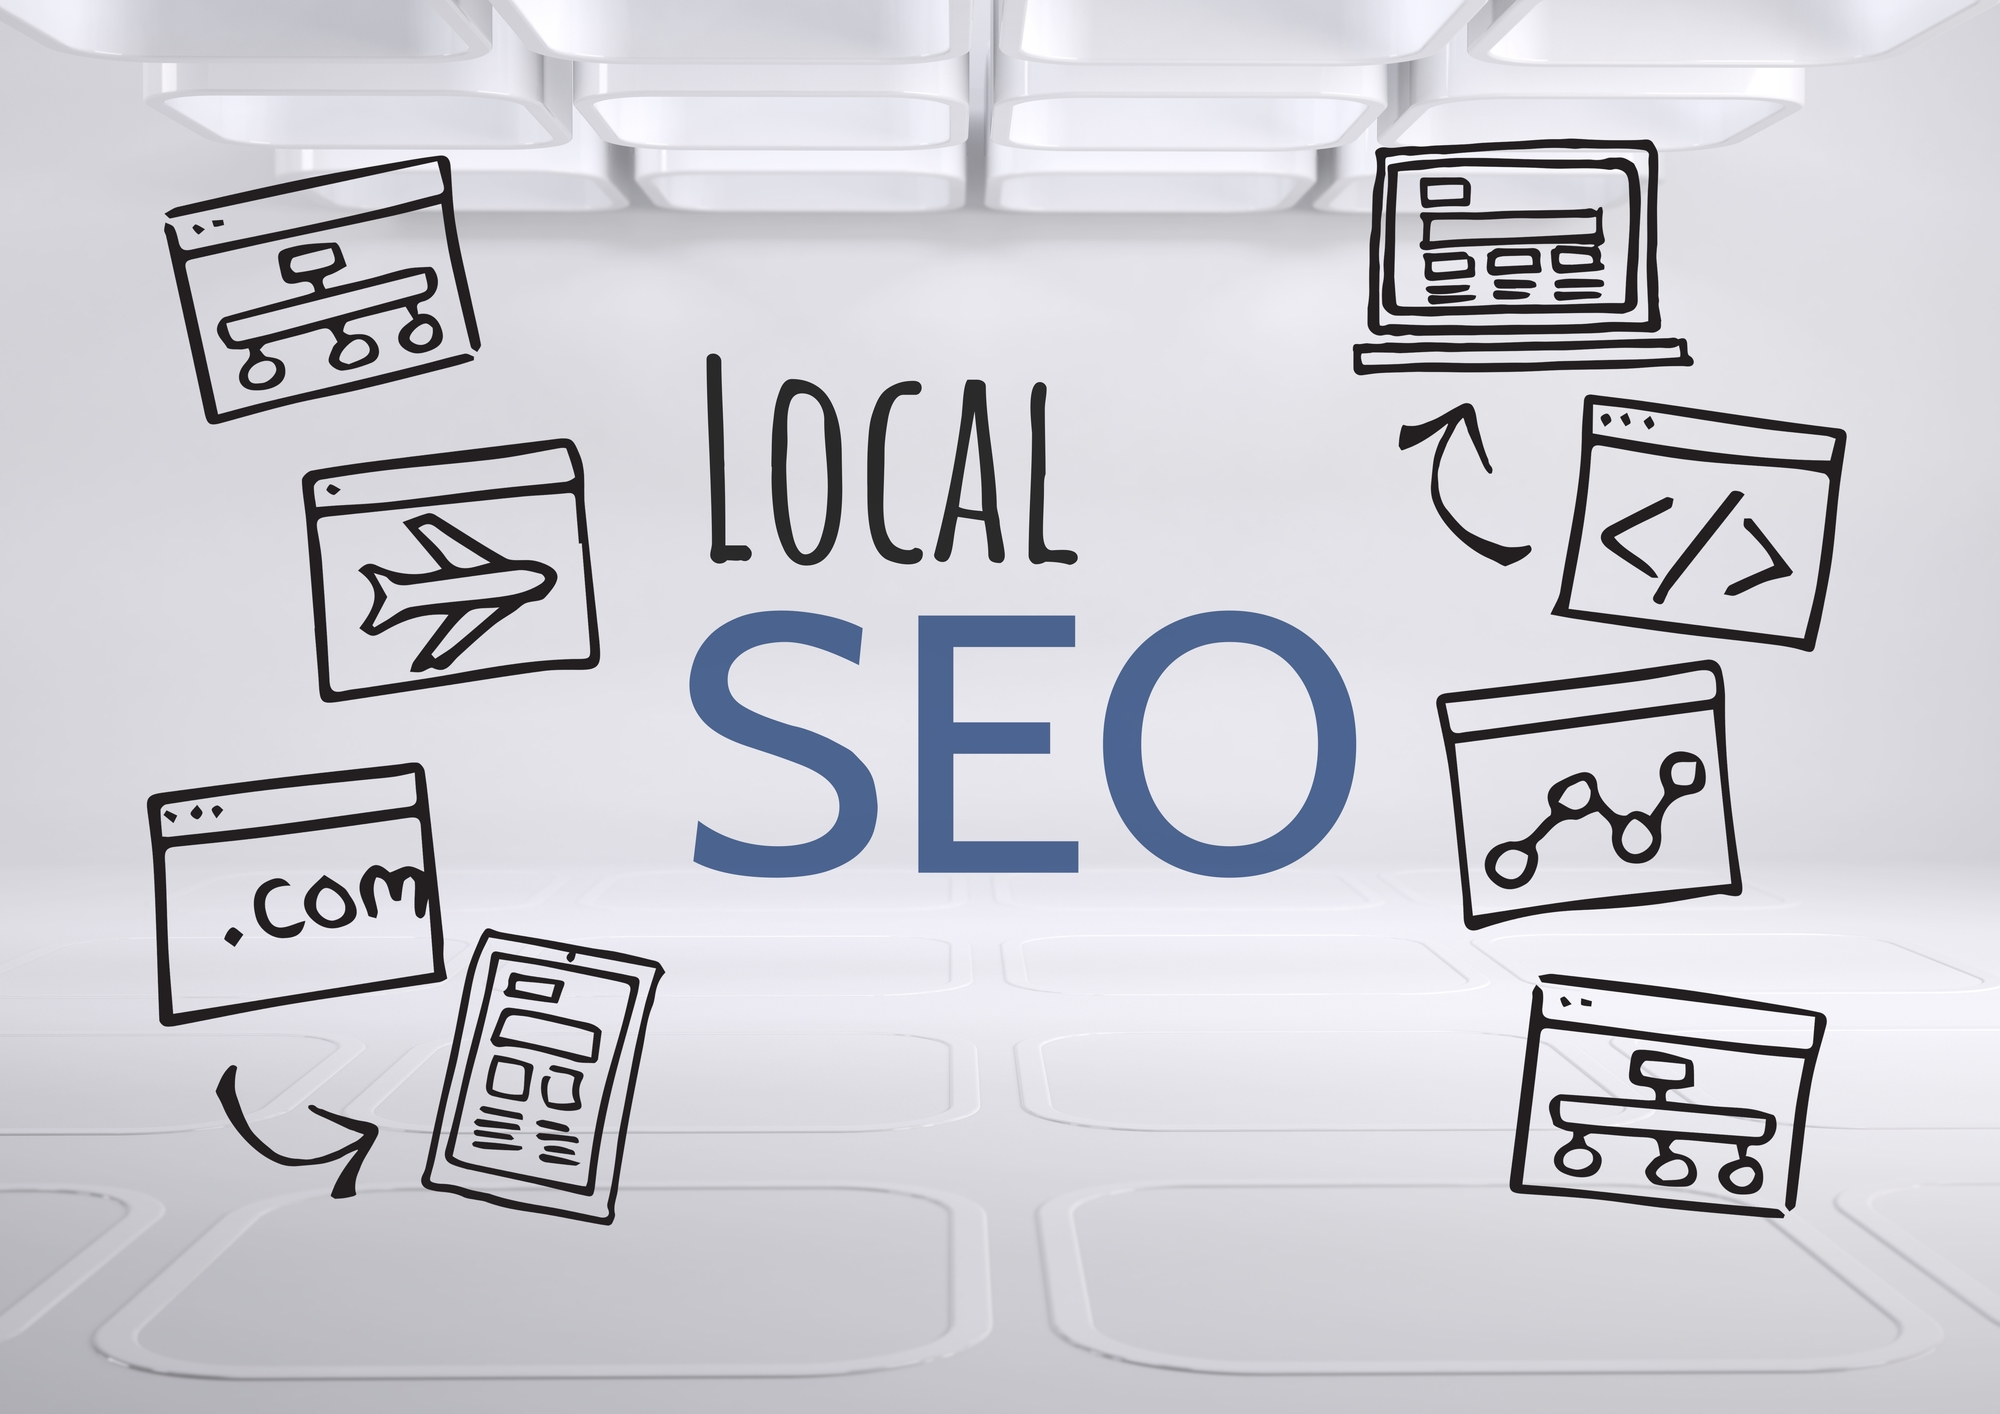 Planes Landing Page - Plan SEO Local - GrupoDigital360